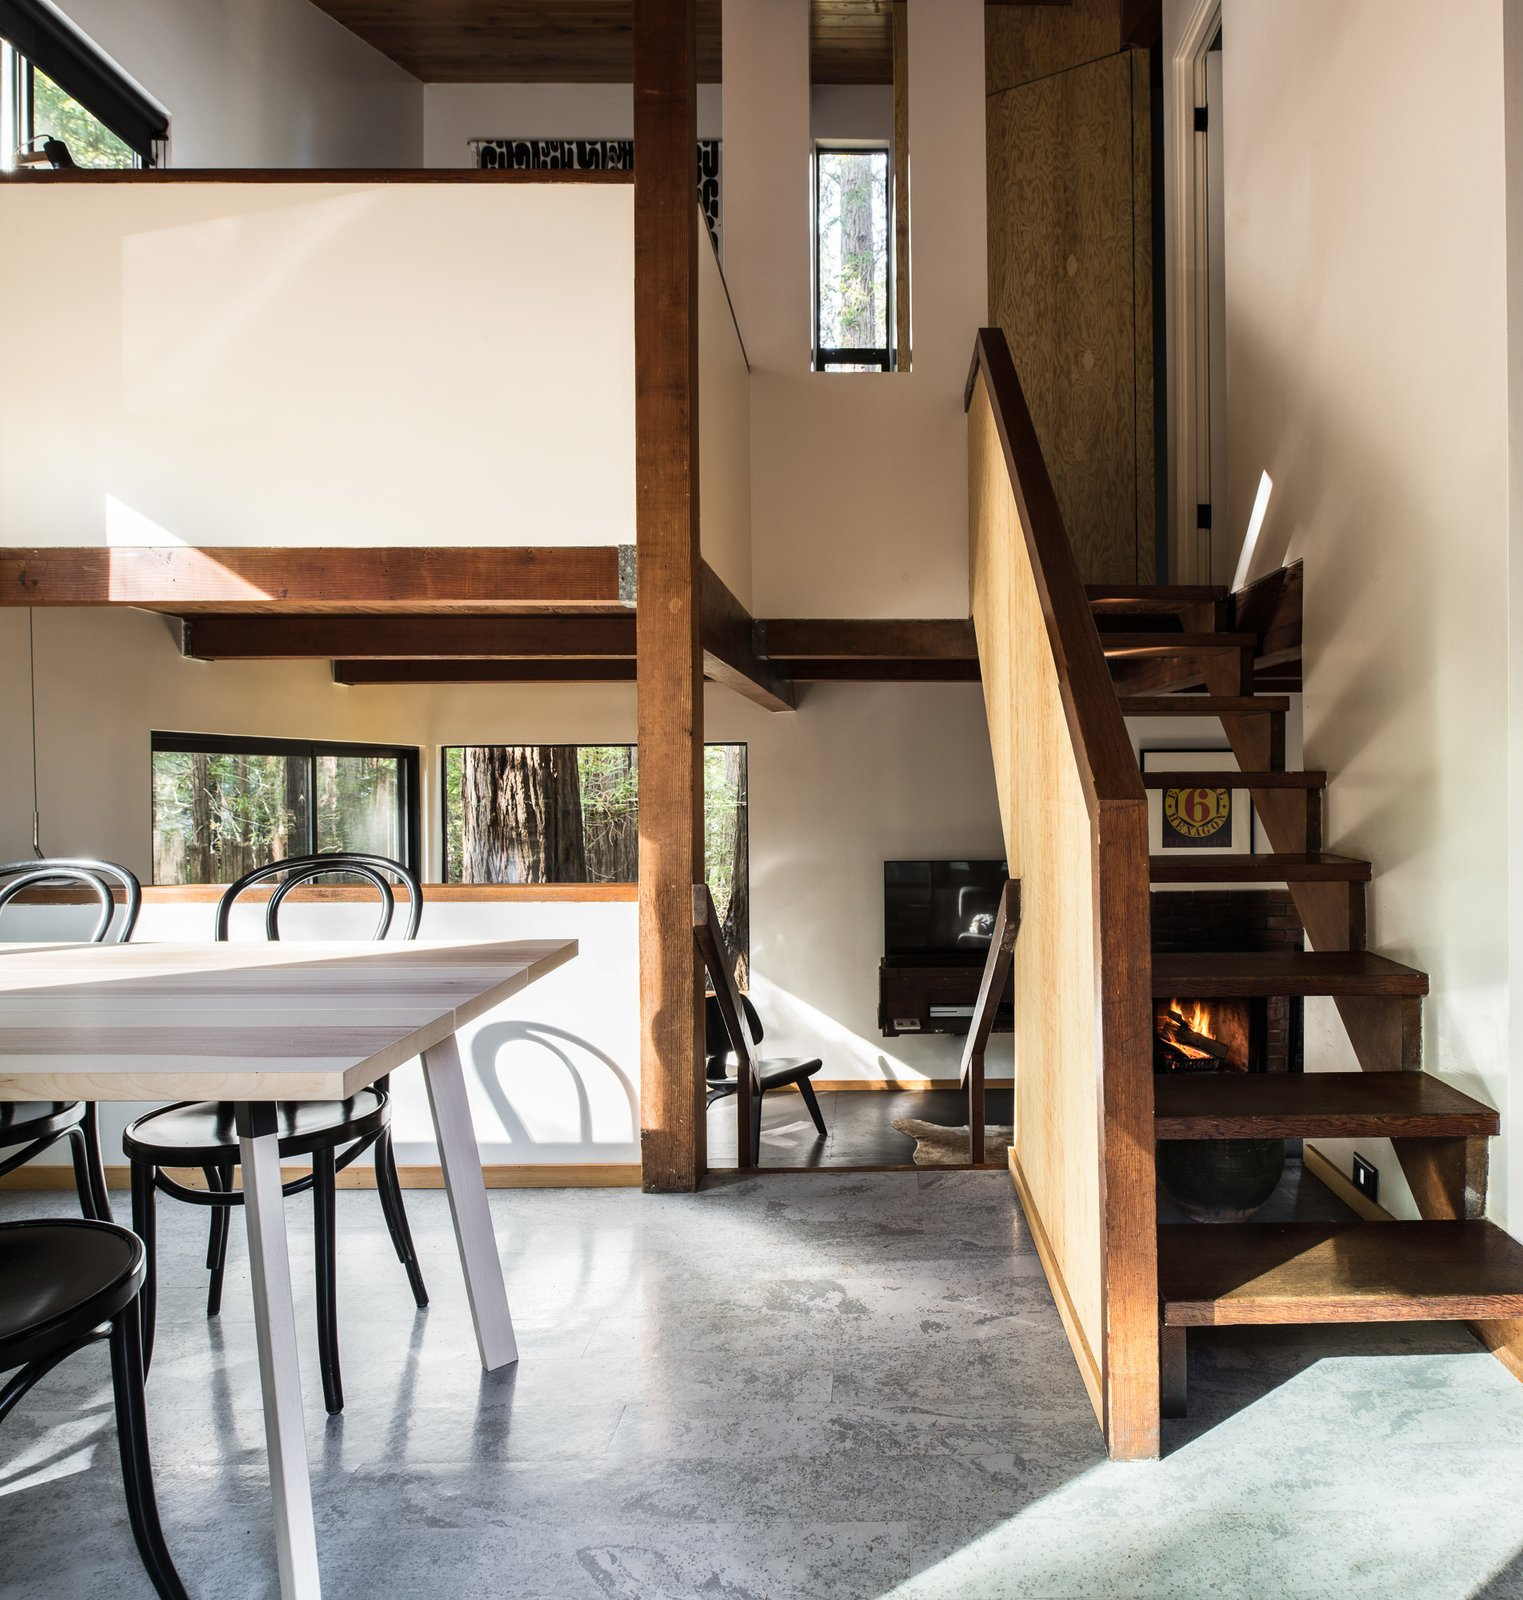 Dining Room, Chair, Table, and Concrete Floor Three levels intermix within the small footprint of the home, creating a loft-like feeling.   Photo 3 of 7 in A Midcentury Cabin at California's Sea Ranch Gets a Glowing Makeover